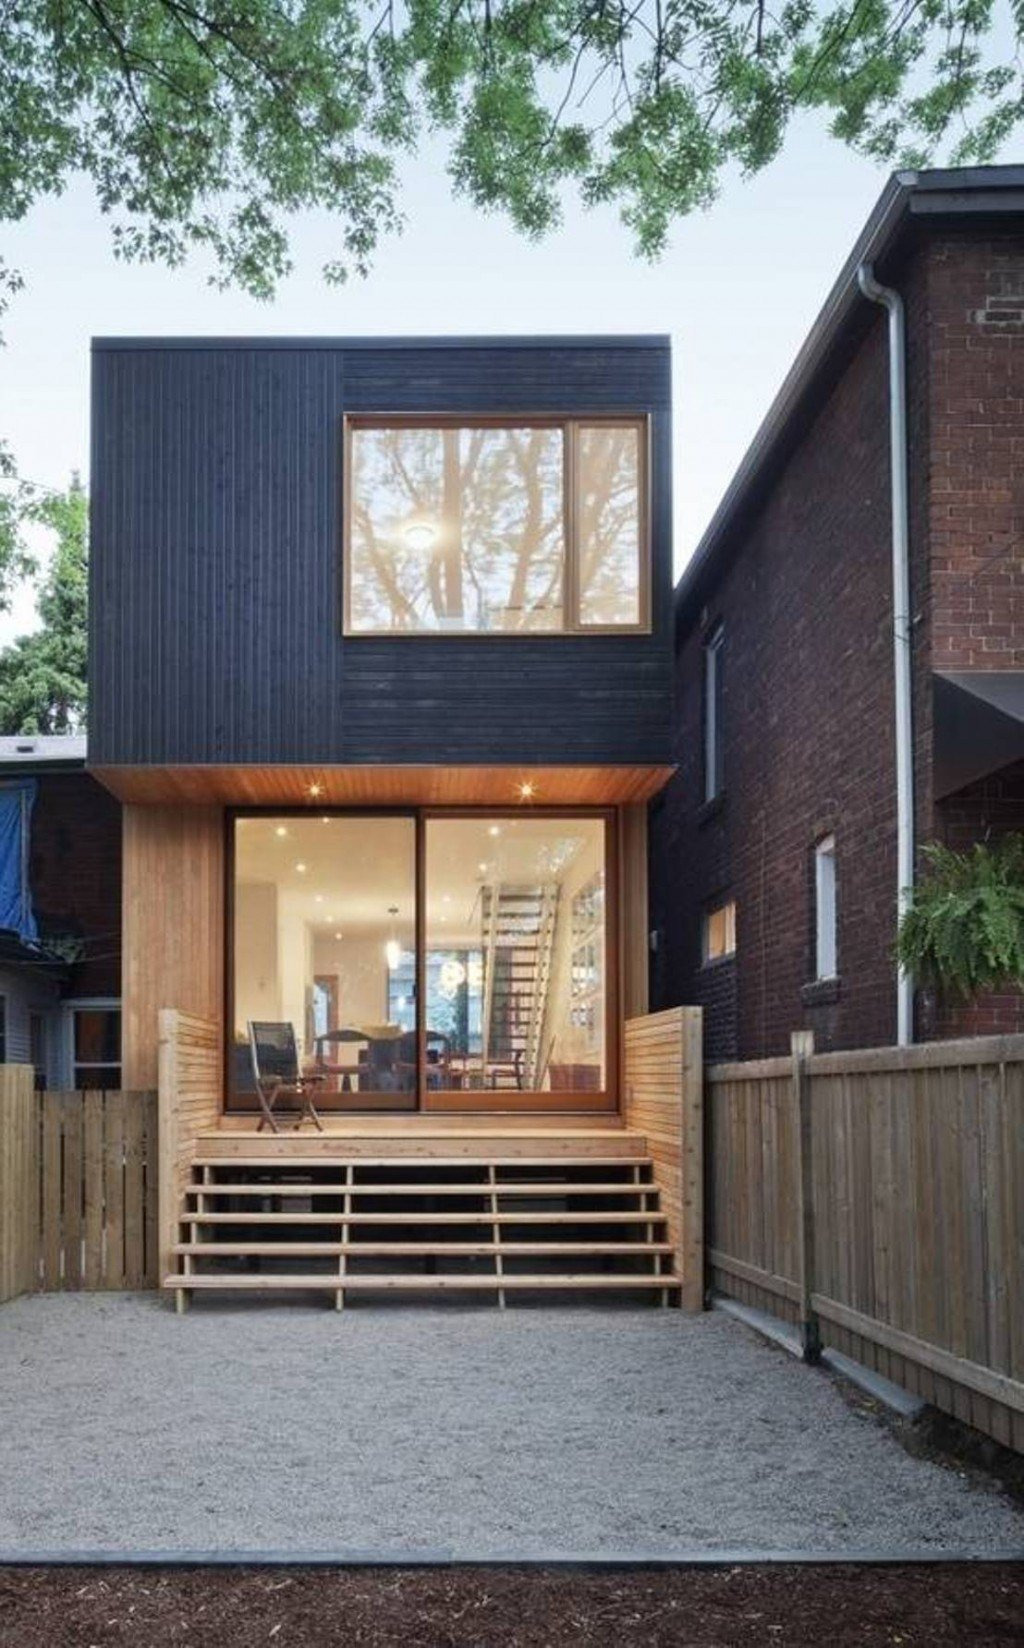 Affordable Homes to Build Inspirational Corner Architecture Inexpensive Prefab Home Design